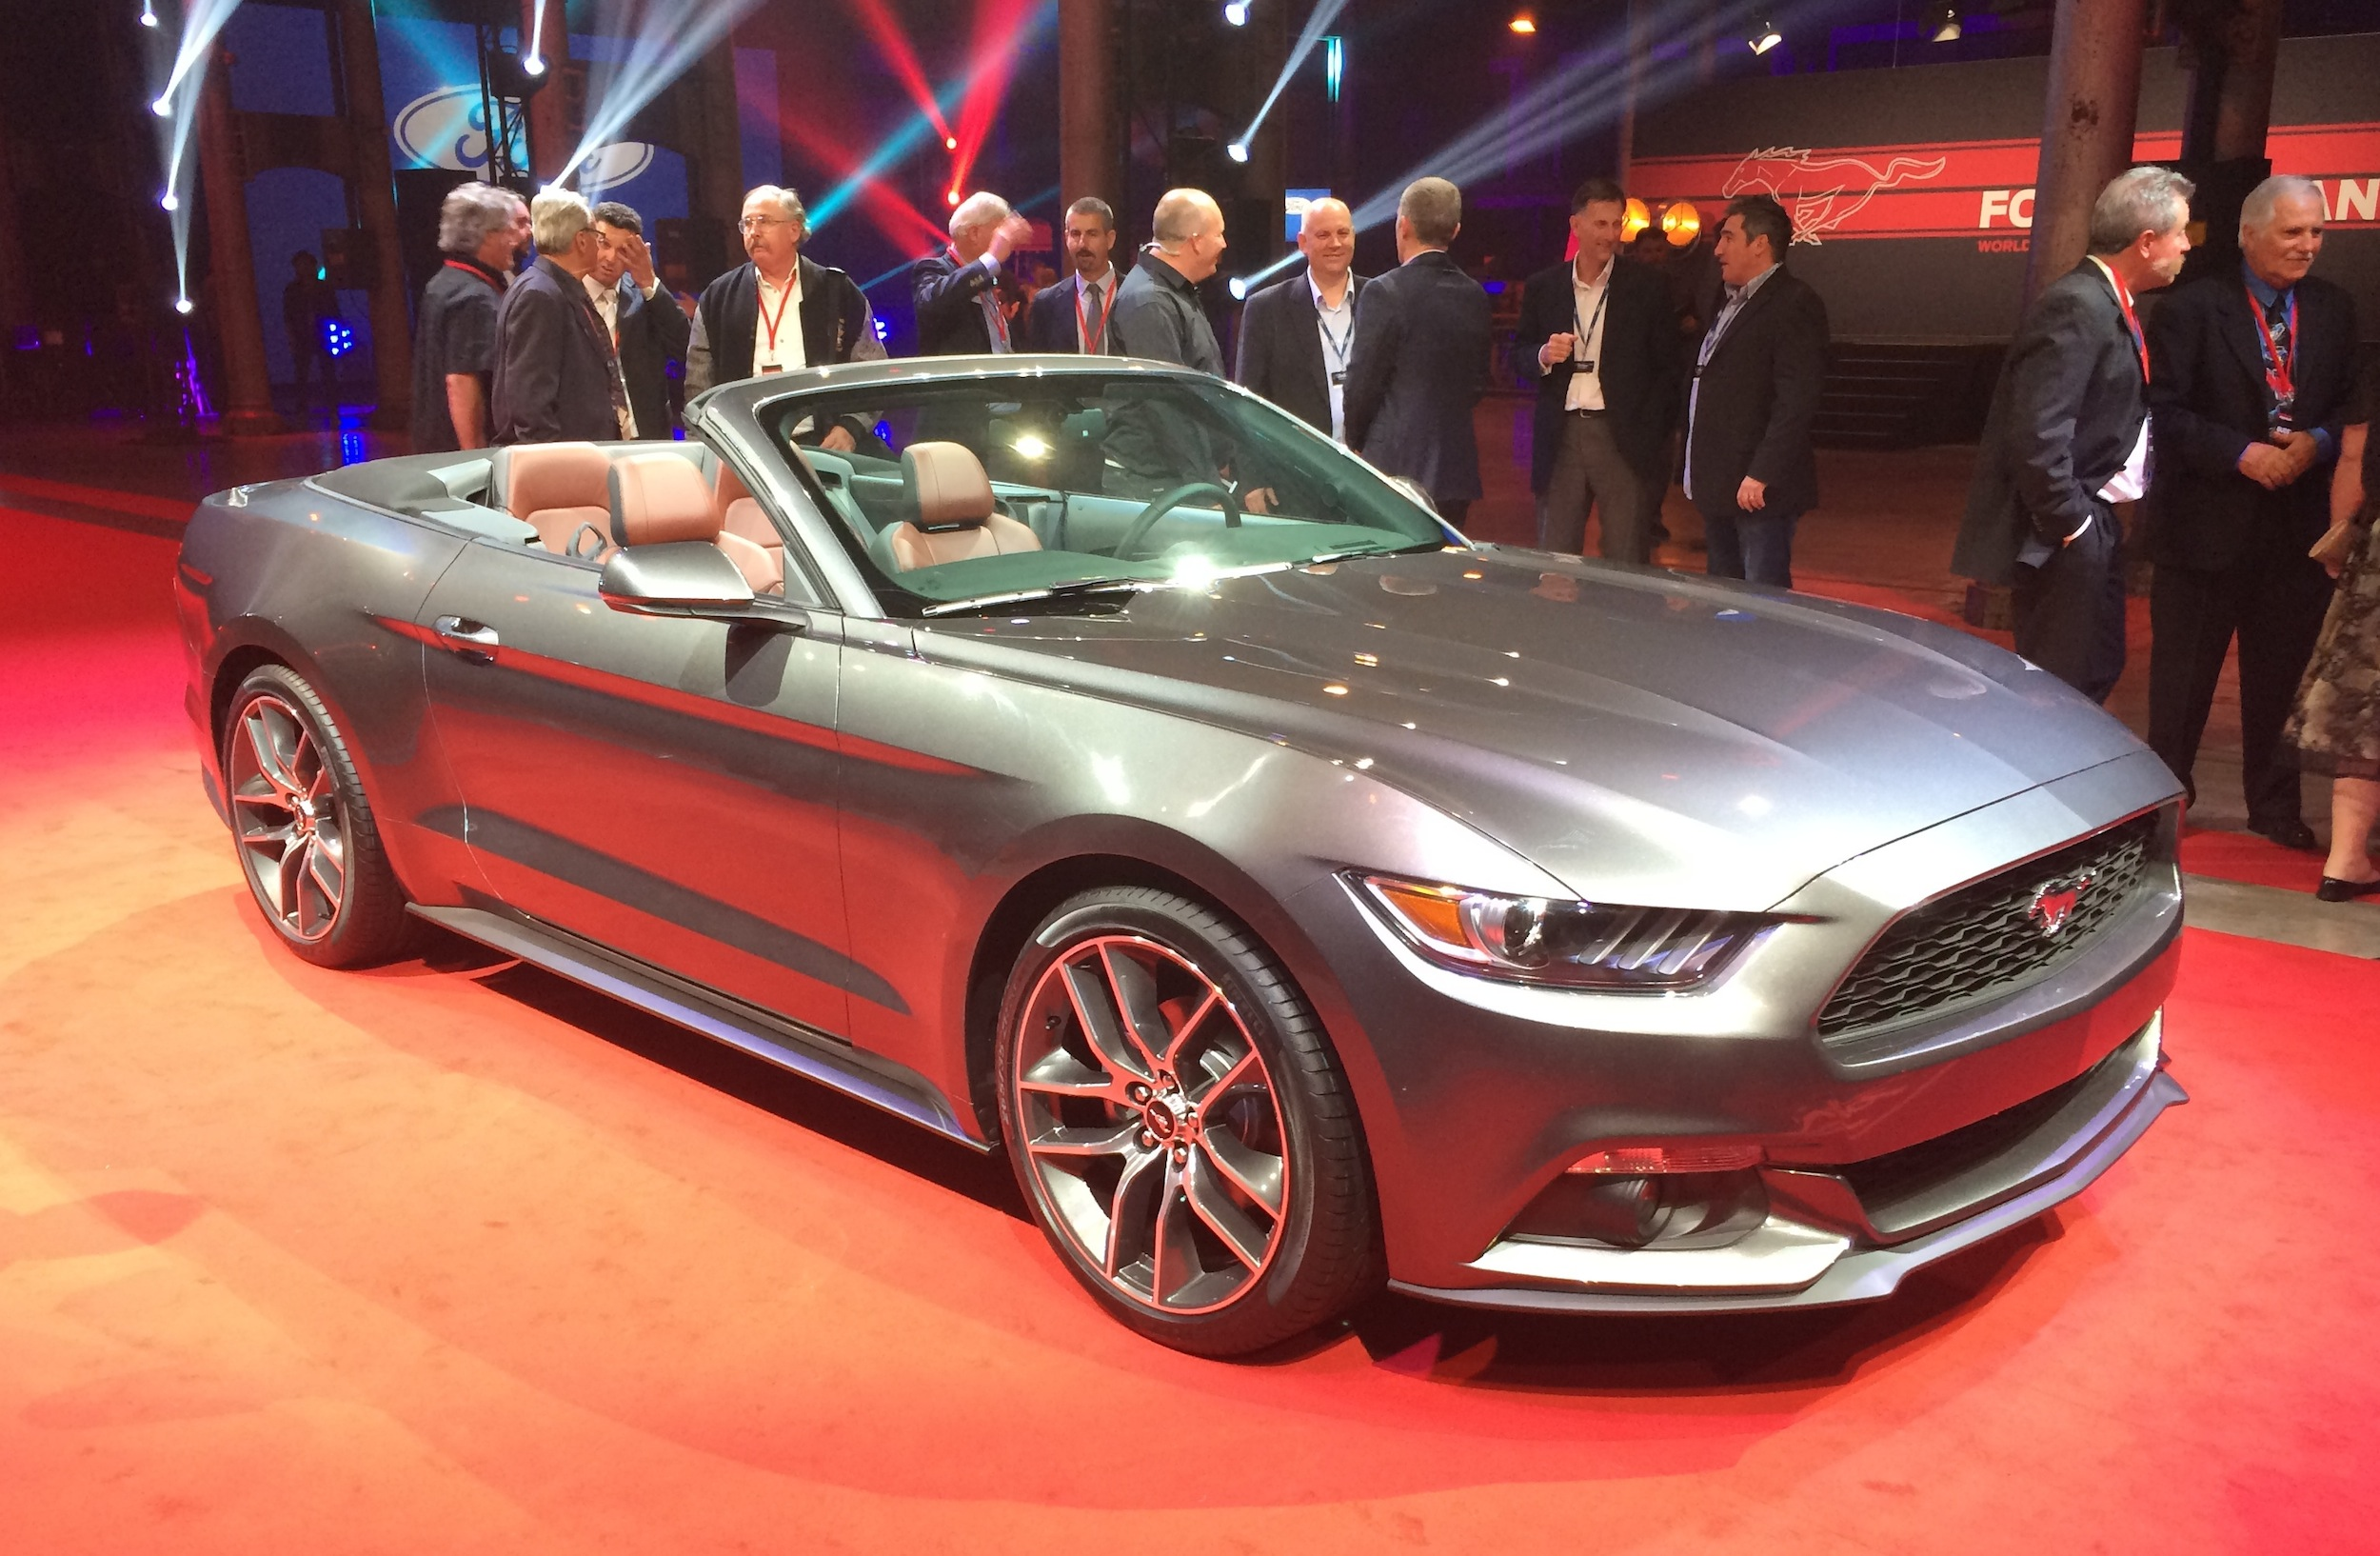 Ford Mustang Convertible unveiled in Australia - photos | CarAdvice